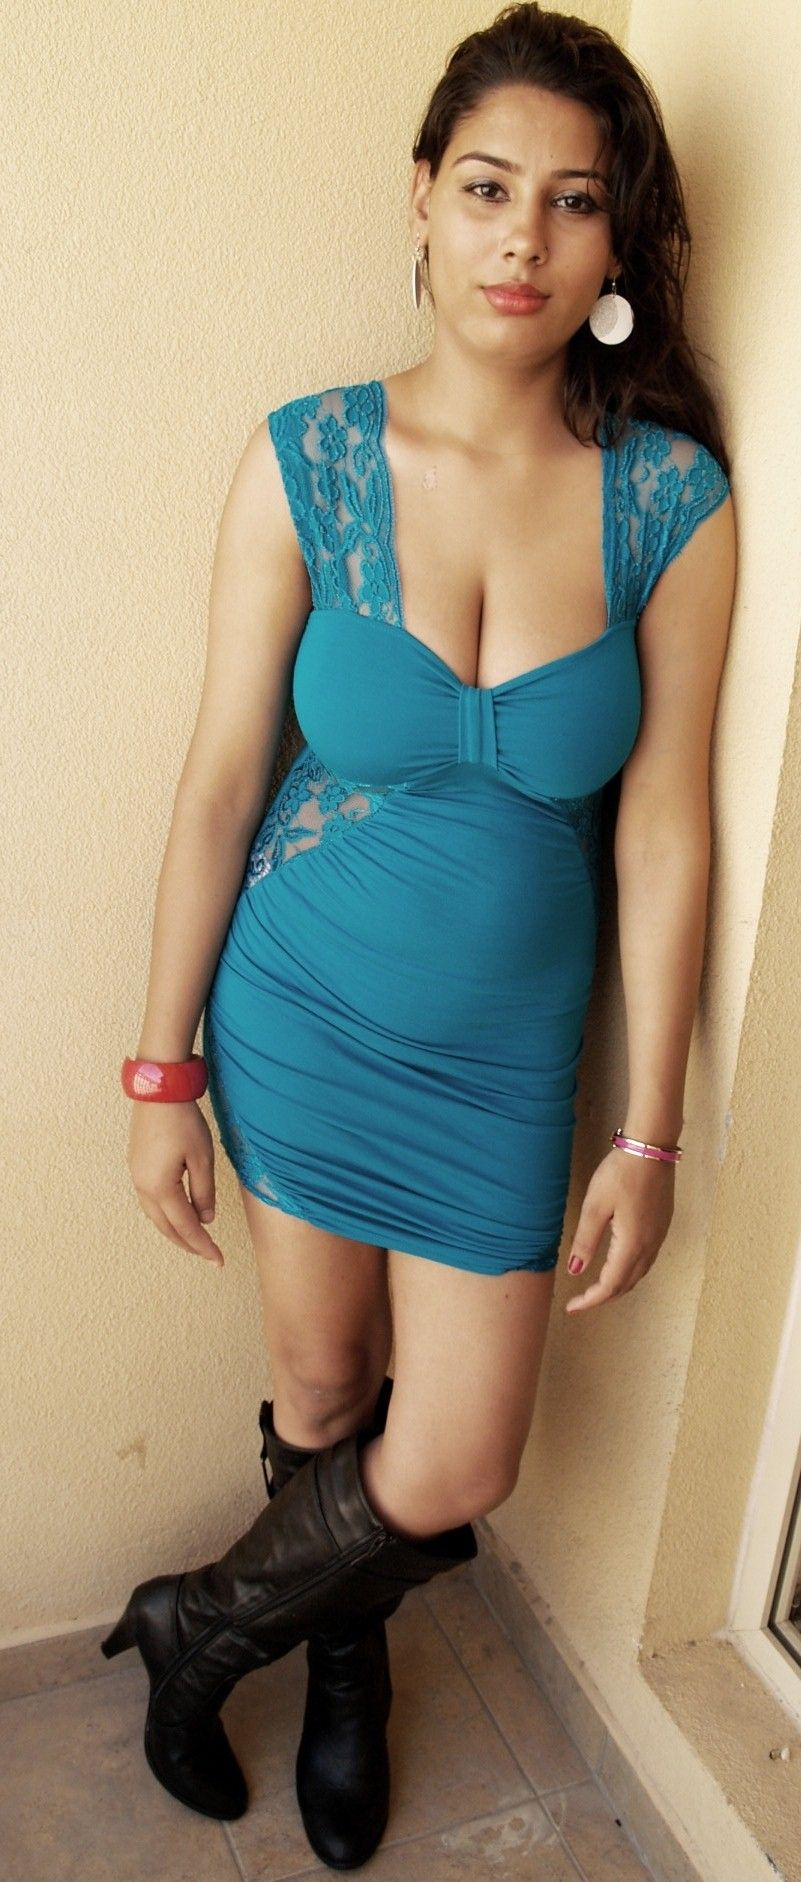 india Independent escorts